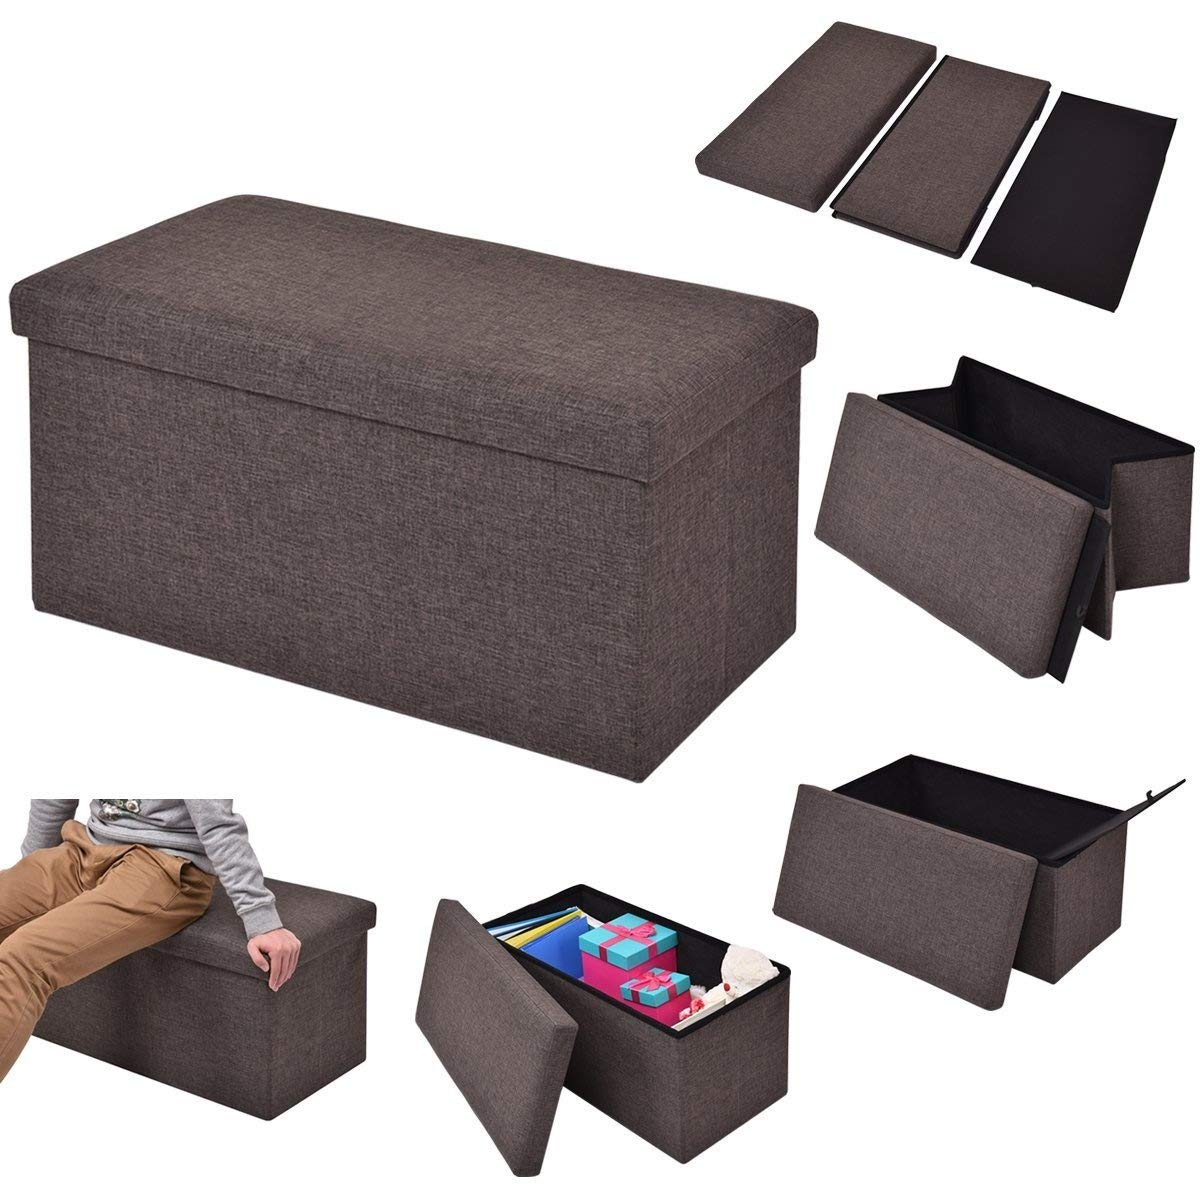 Costway Folding Storage Ottoman 2 Size of Single (1 Seater) & Double (2 Seater) Available Pouffe Foot Box 3 Colors Stool Suitable for Bedroom Living Room Office Study Home (Brown, Single (1 Seater))